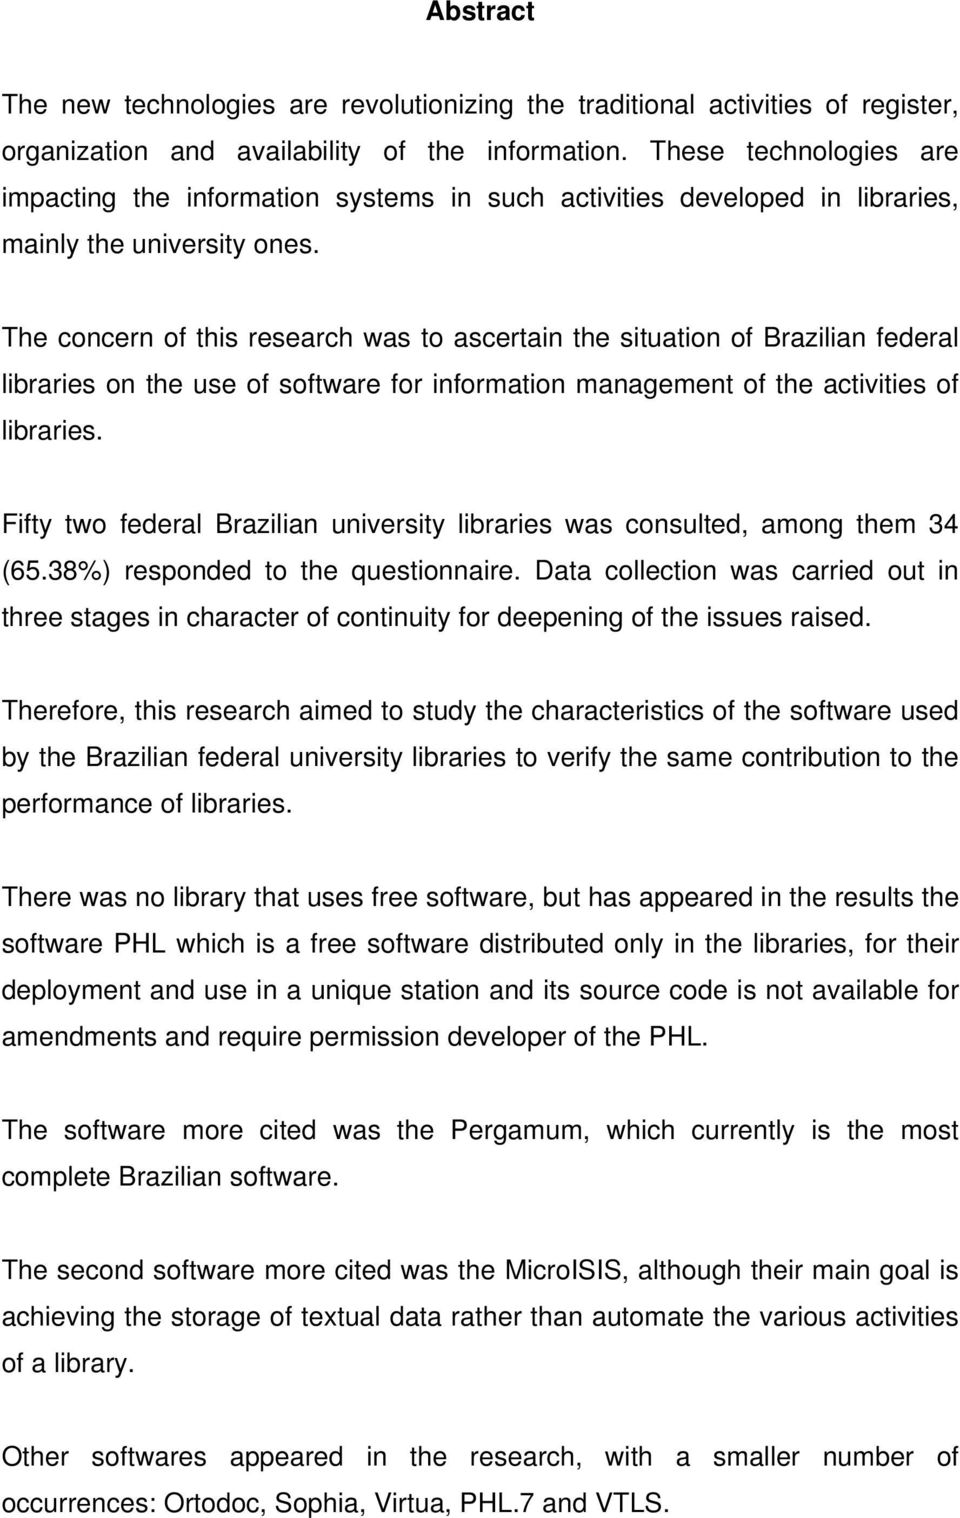 The concern of this research was to ascertain the situation of Brazilian federal libraries on the use of software for information management of the activities of libraries.